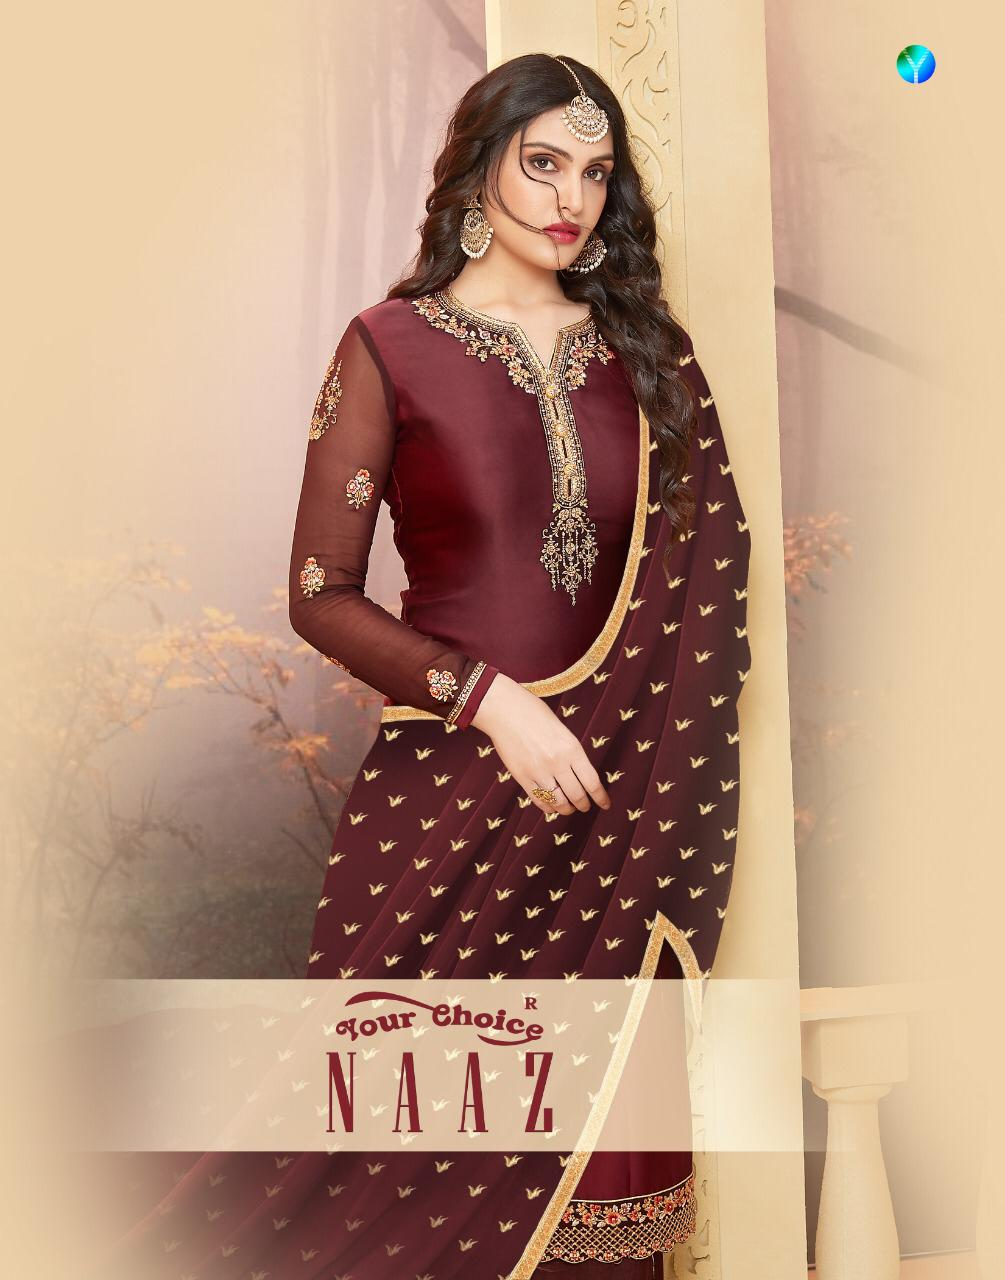 Your Choice Naaz Designer Satin Georgette Suits In Wholesale Rate